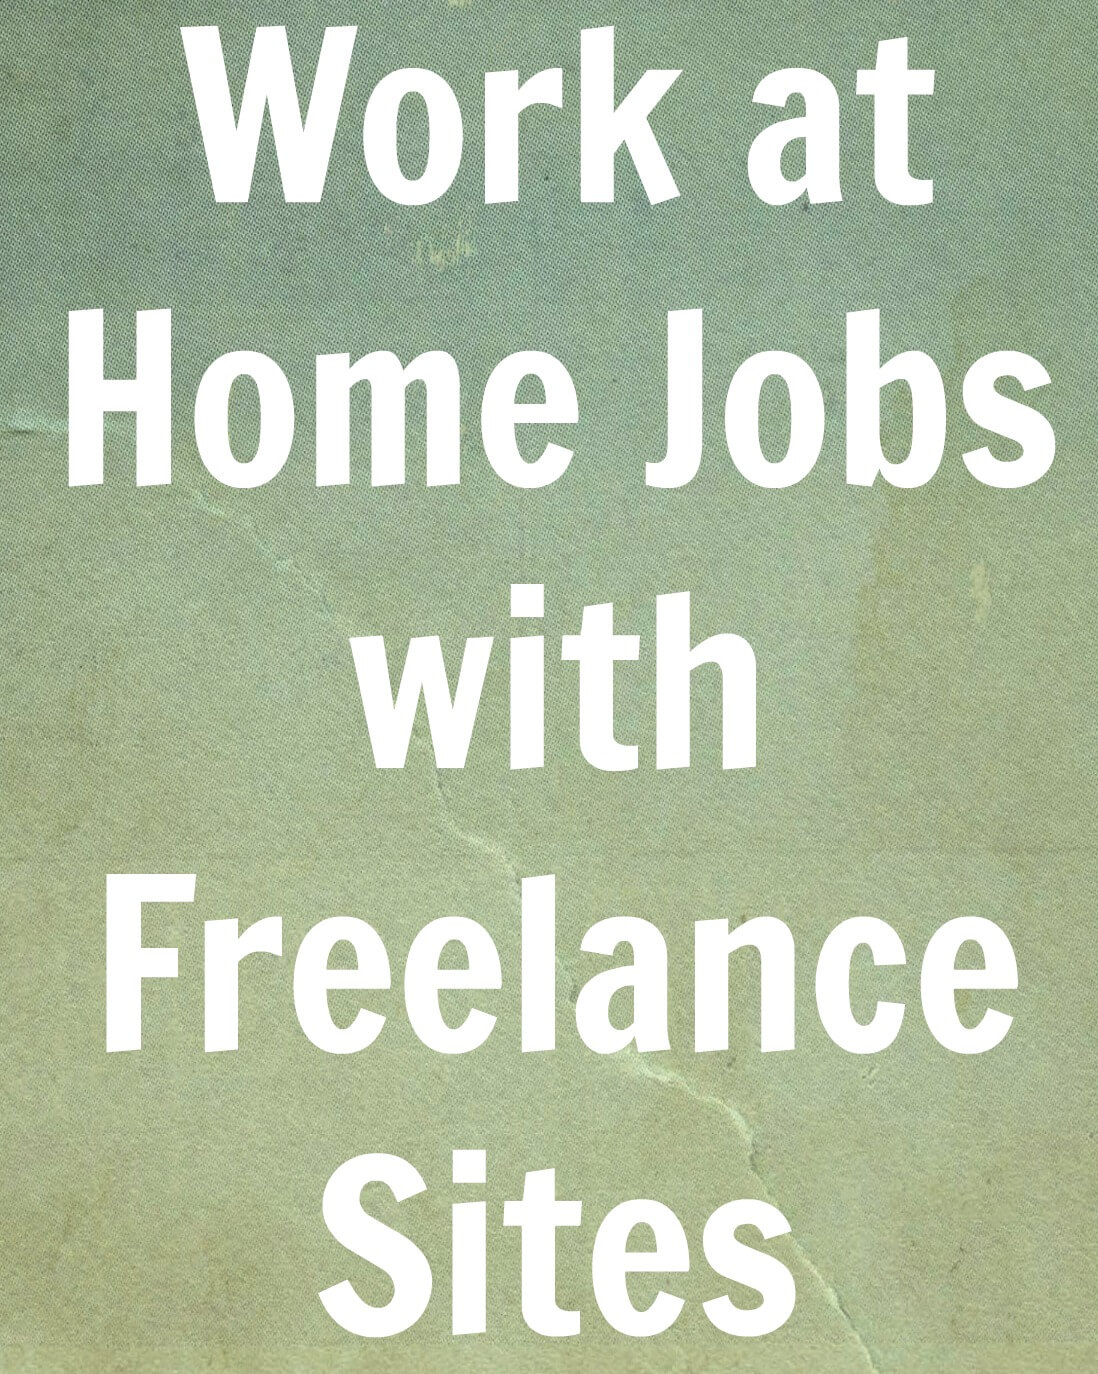 If you are looking for work at home jobs, you should check out freelance sites.